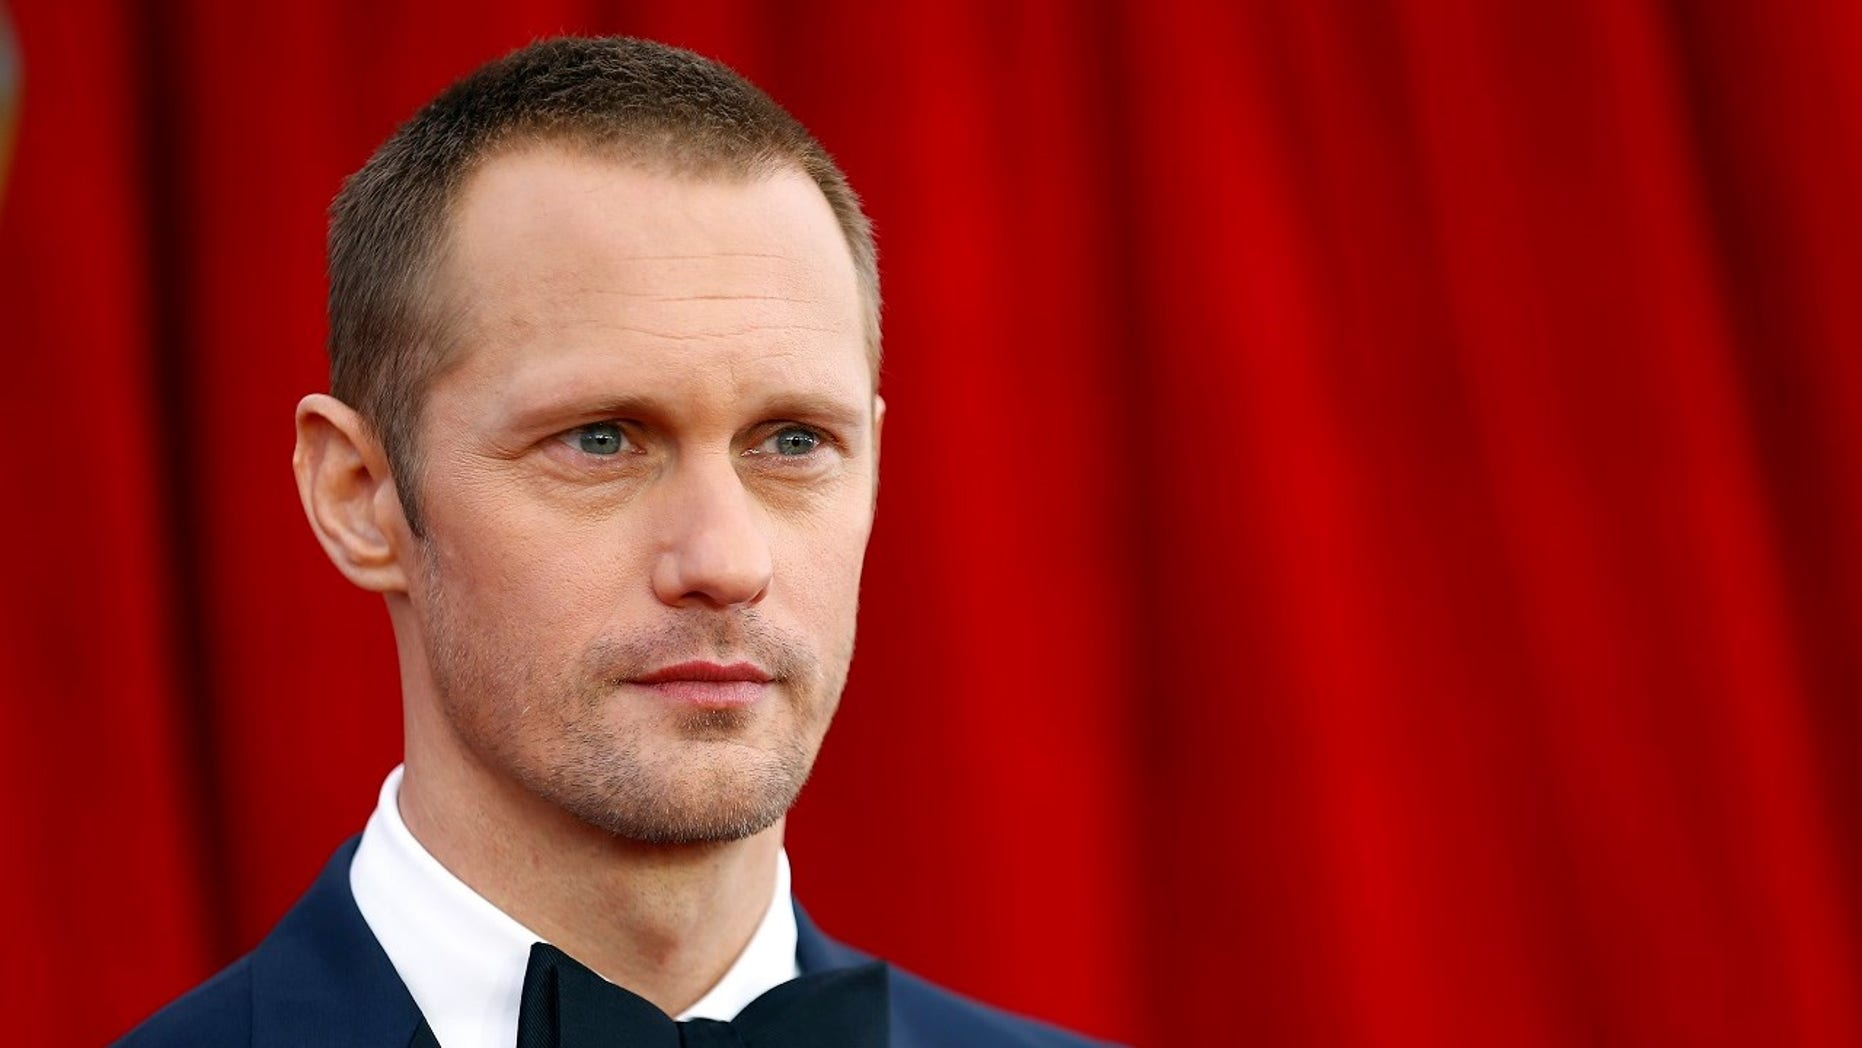 """Alexander Skarsgard slammed the """"disgusting"""" double standard in Hollywood after witnessing some of his actress friends dealing with it."""